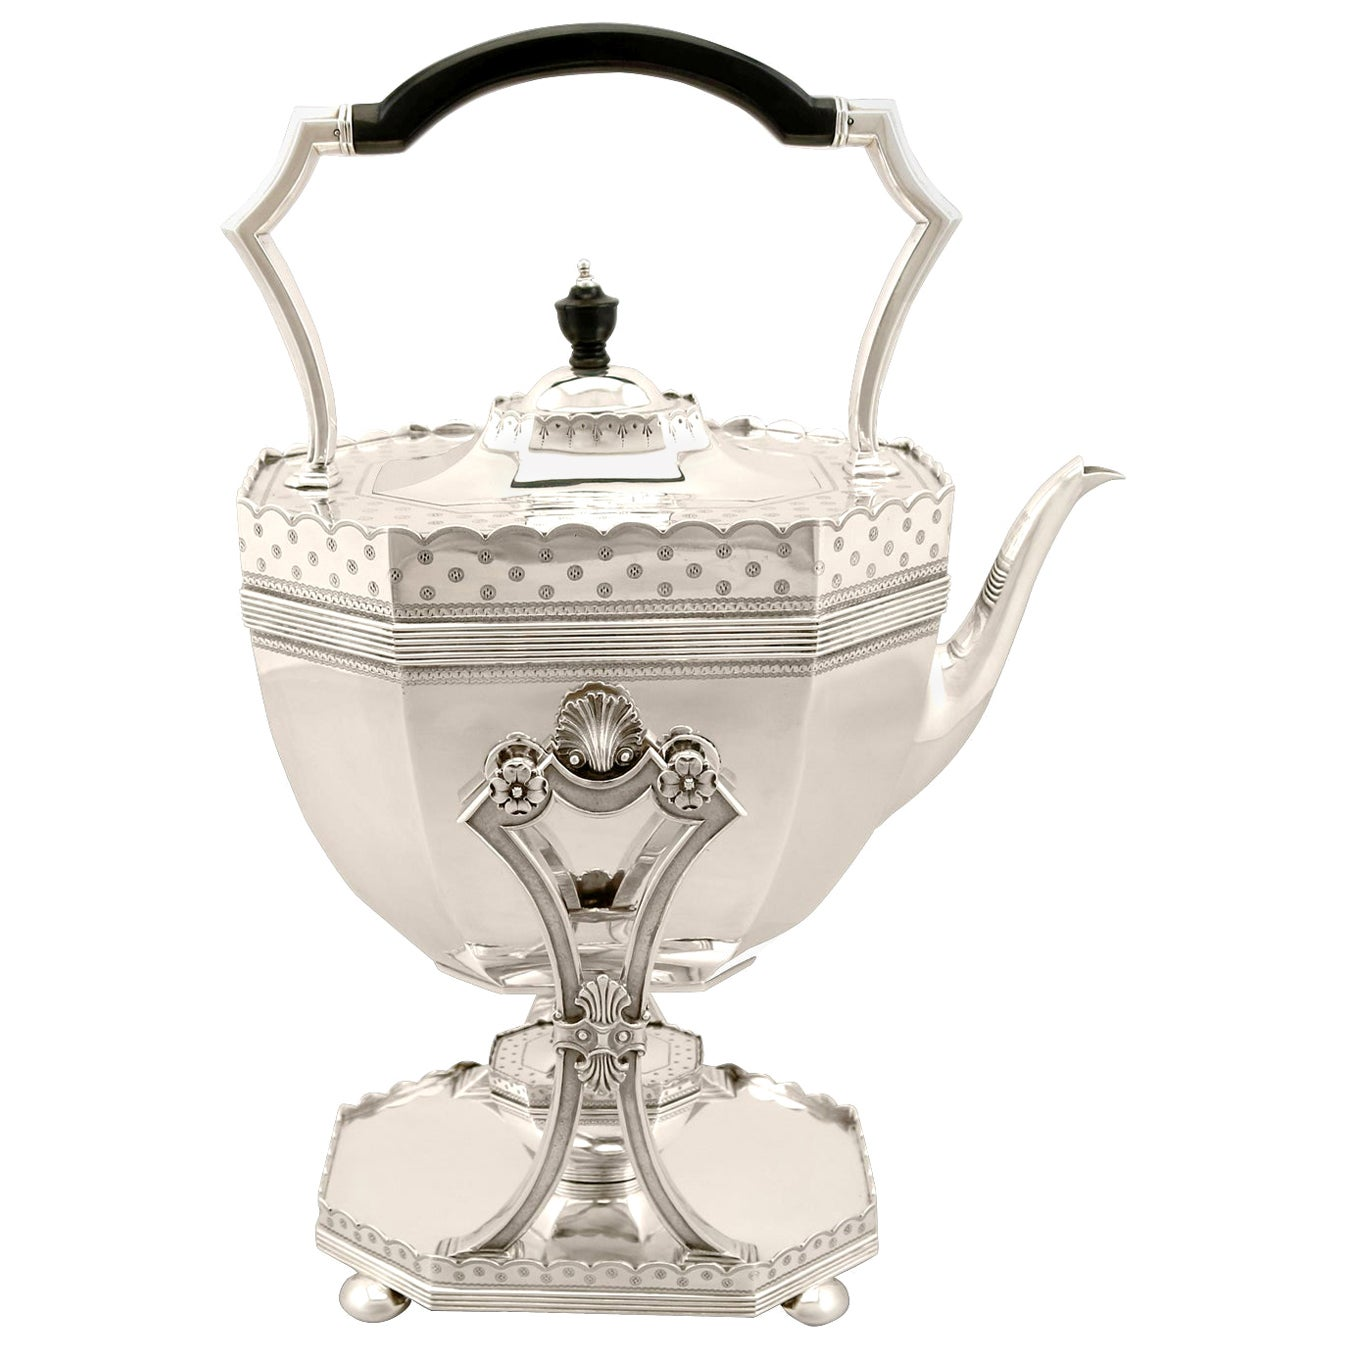 Antique Victorian English Sterling Silver Spirit Kettle by Dobson & Sons